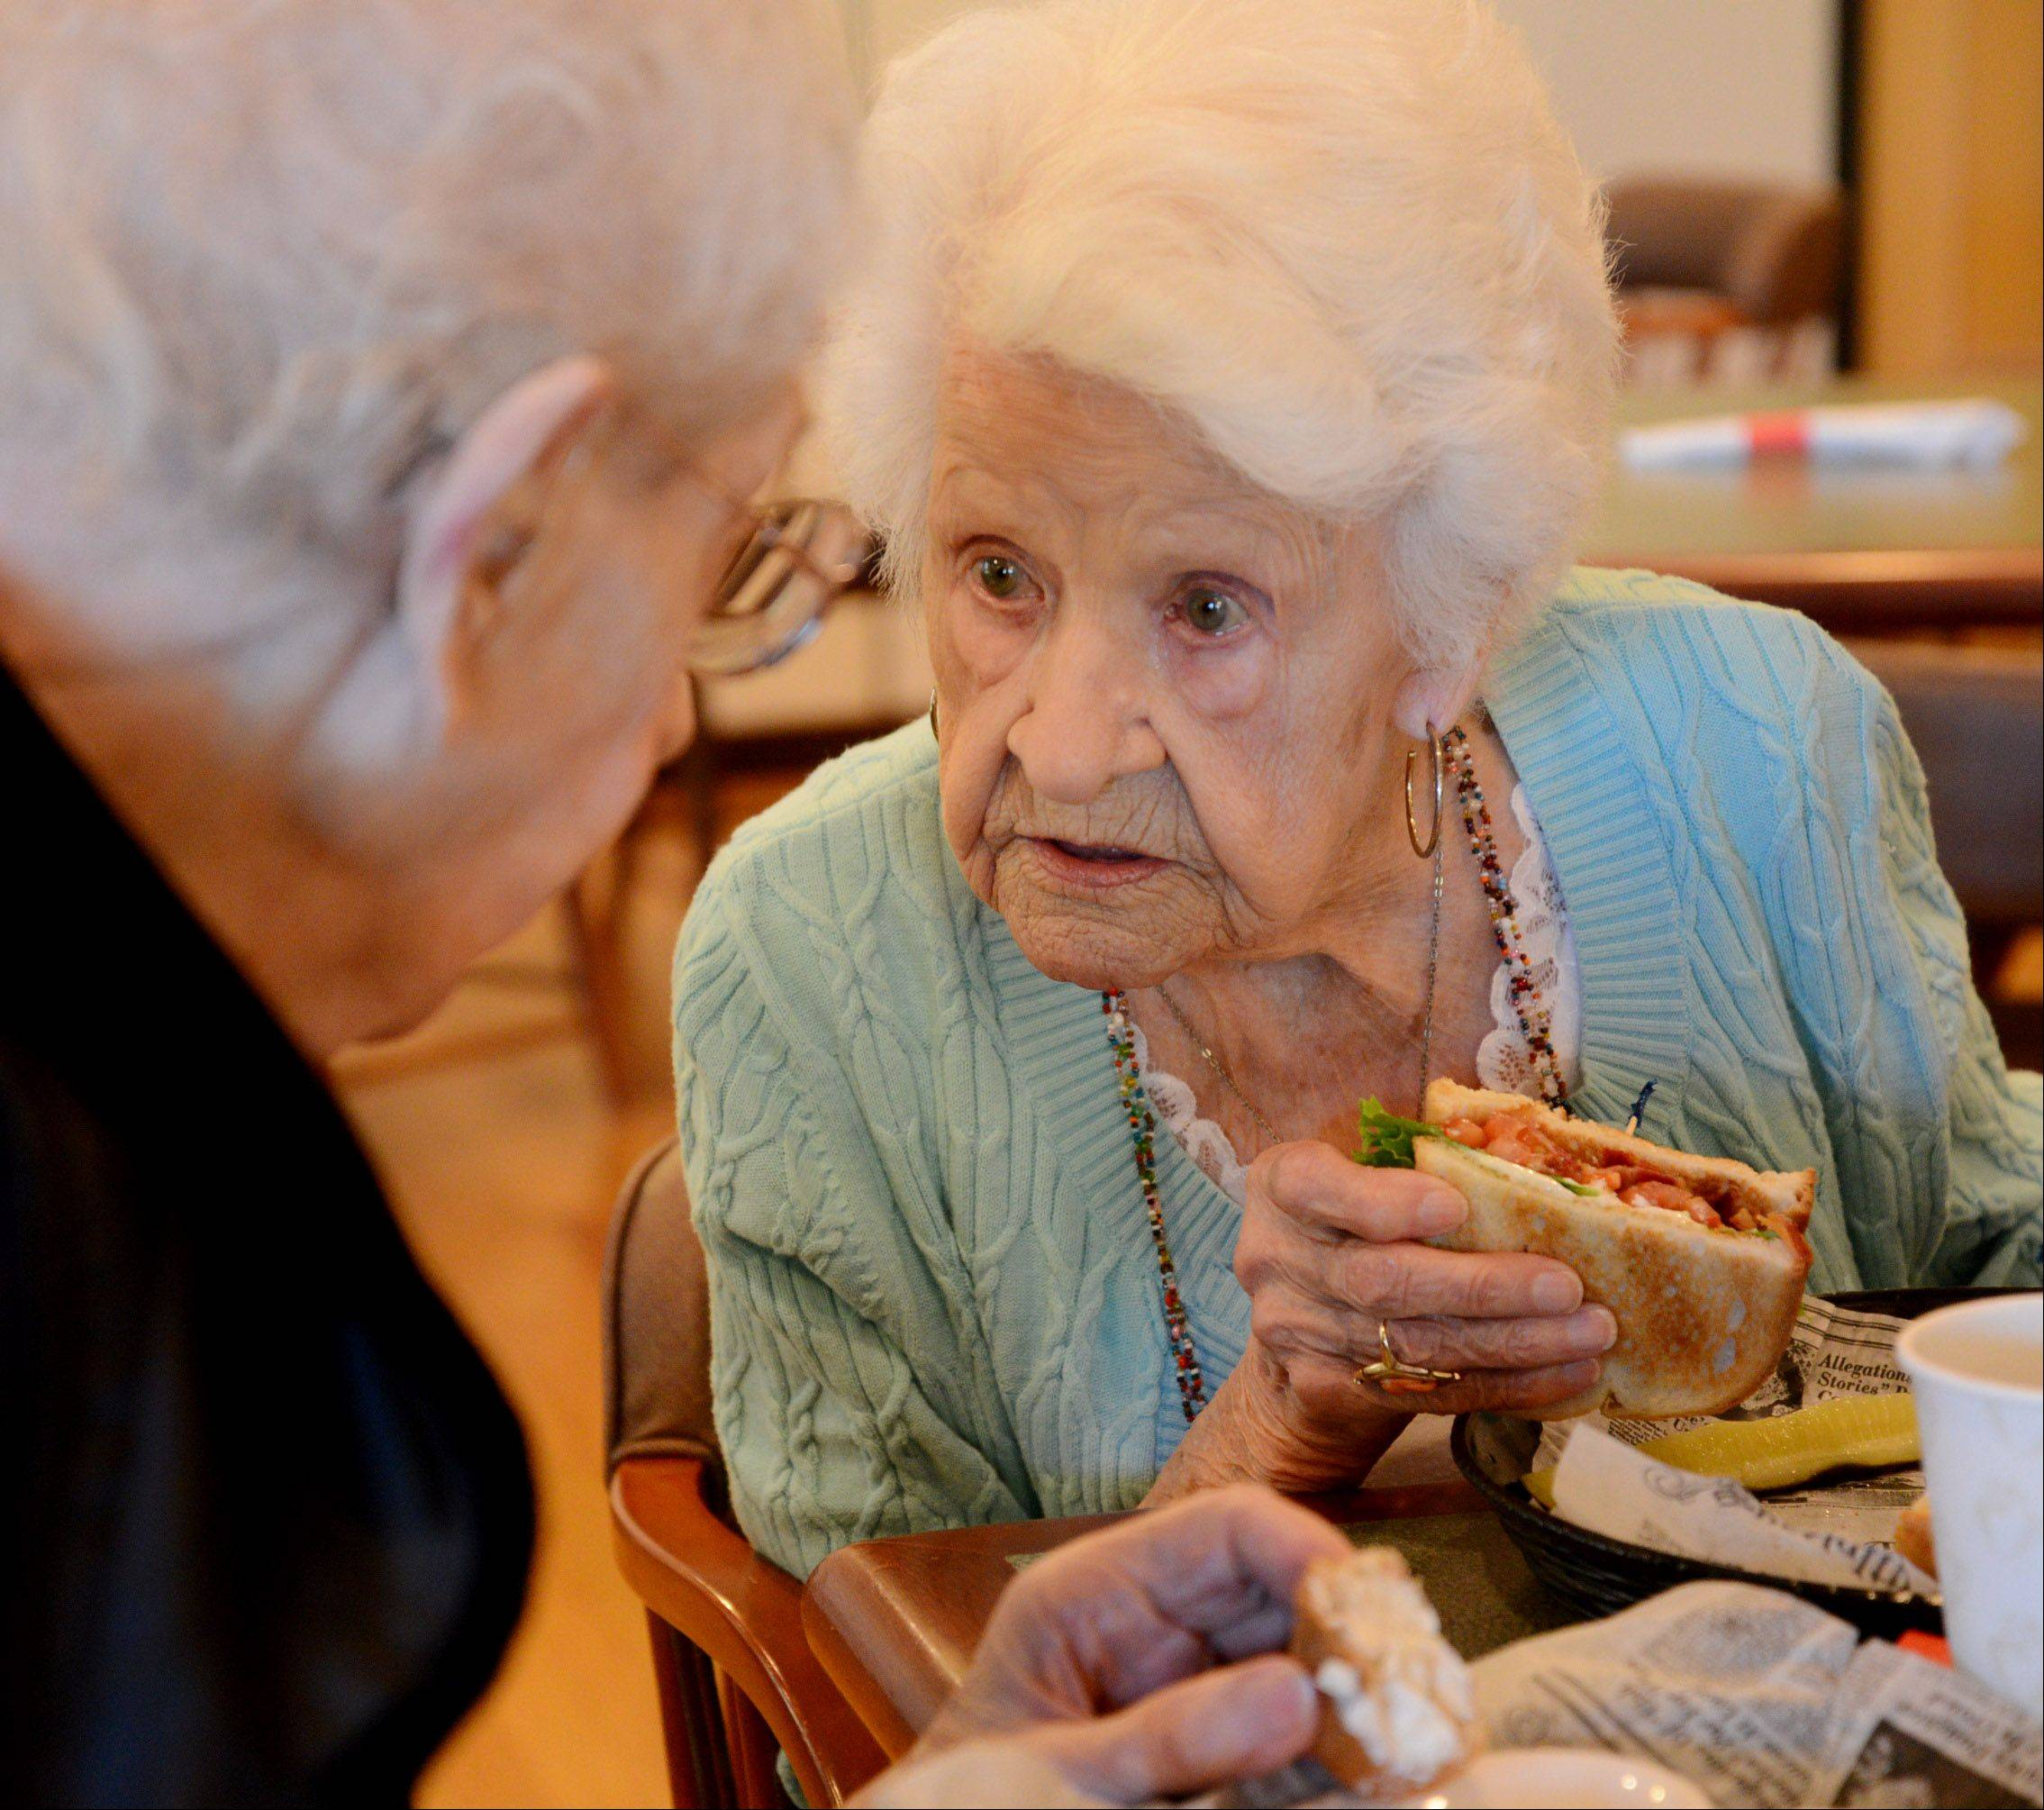 Alice Jensen of Arlington Heights and Irene Cook of Addison met as first-graders in 1918, starting a 95-year friendship. They celebrated one another's 100th birthdays together over the summer.